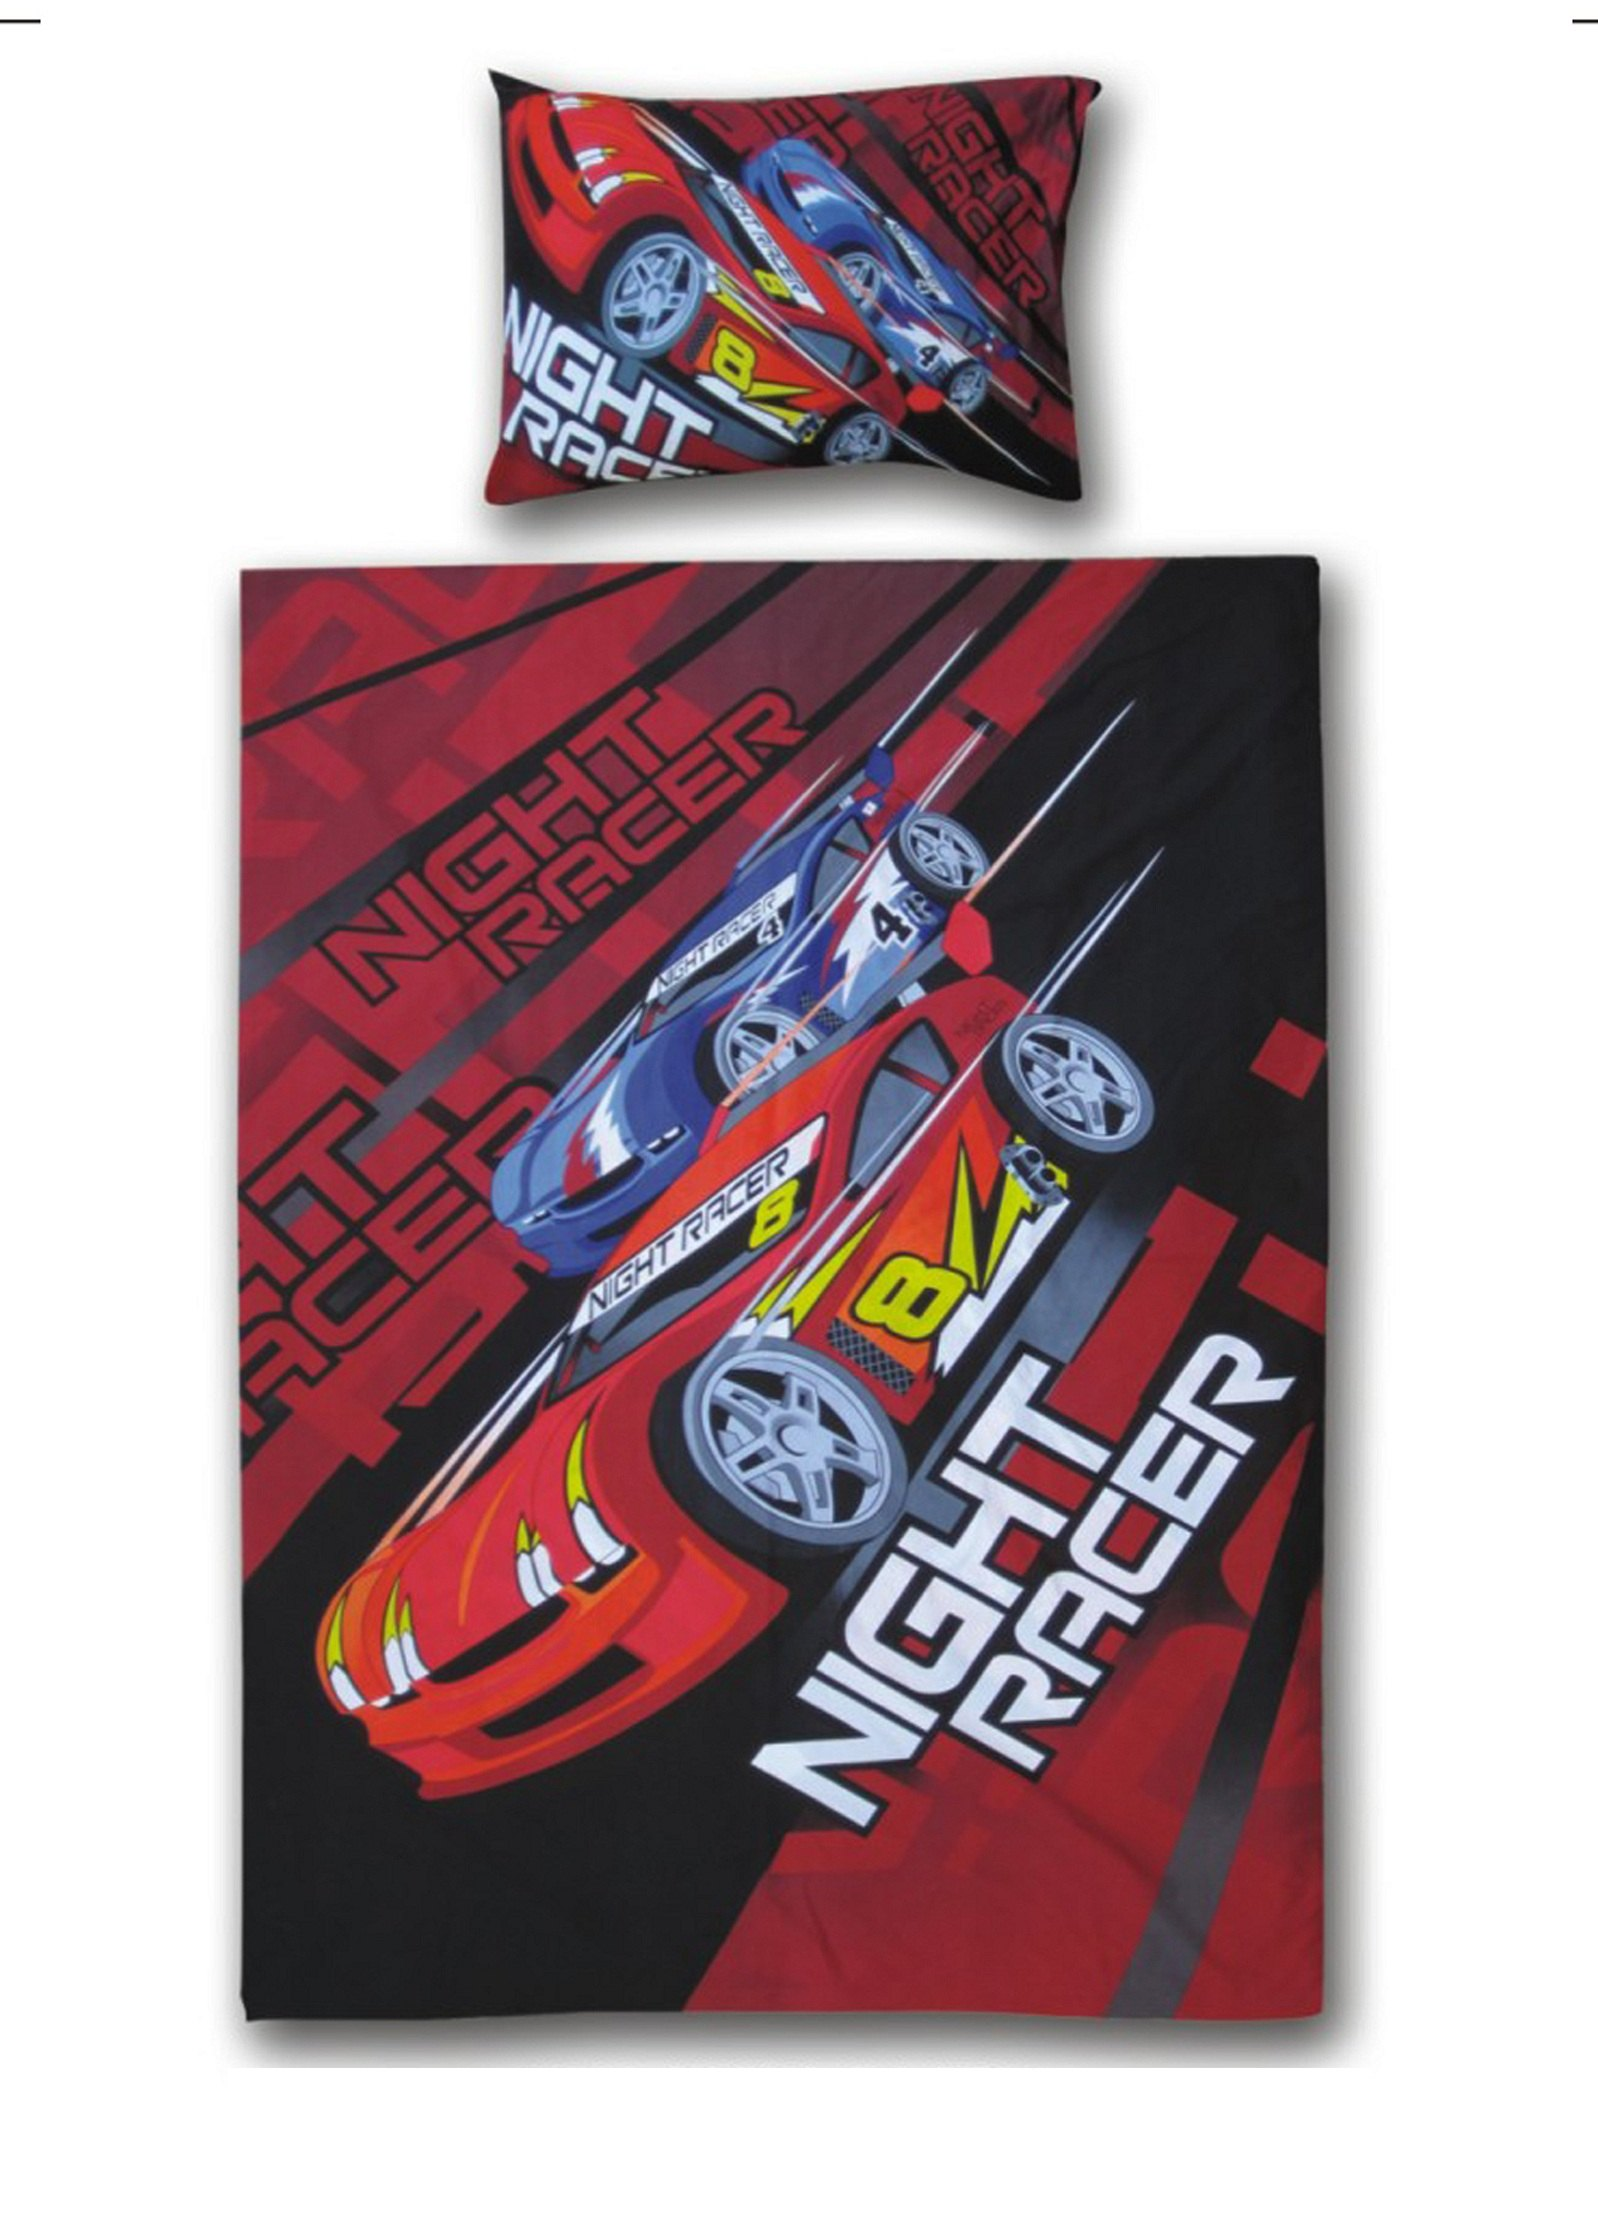 Lenjerie de pat copii Cotton Night Racer